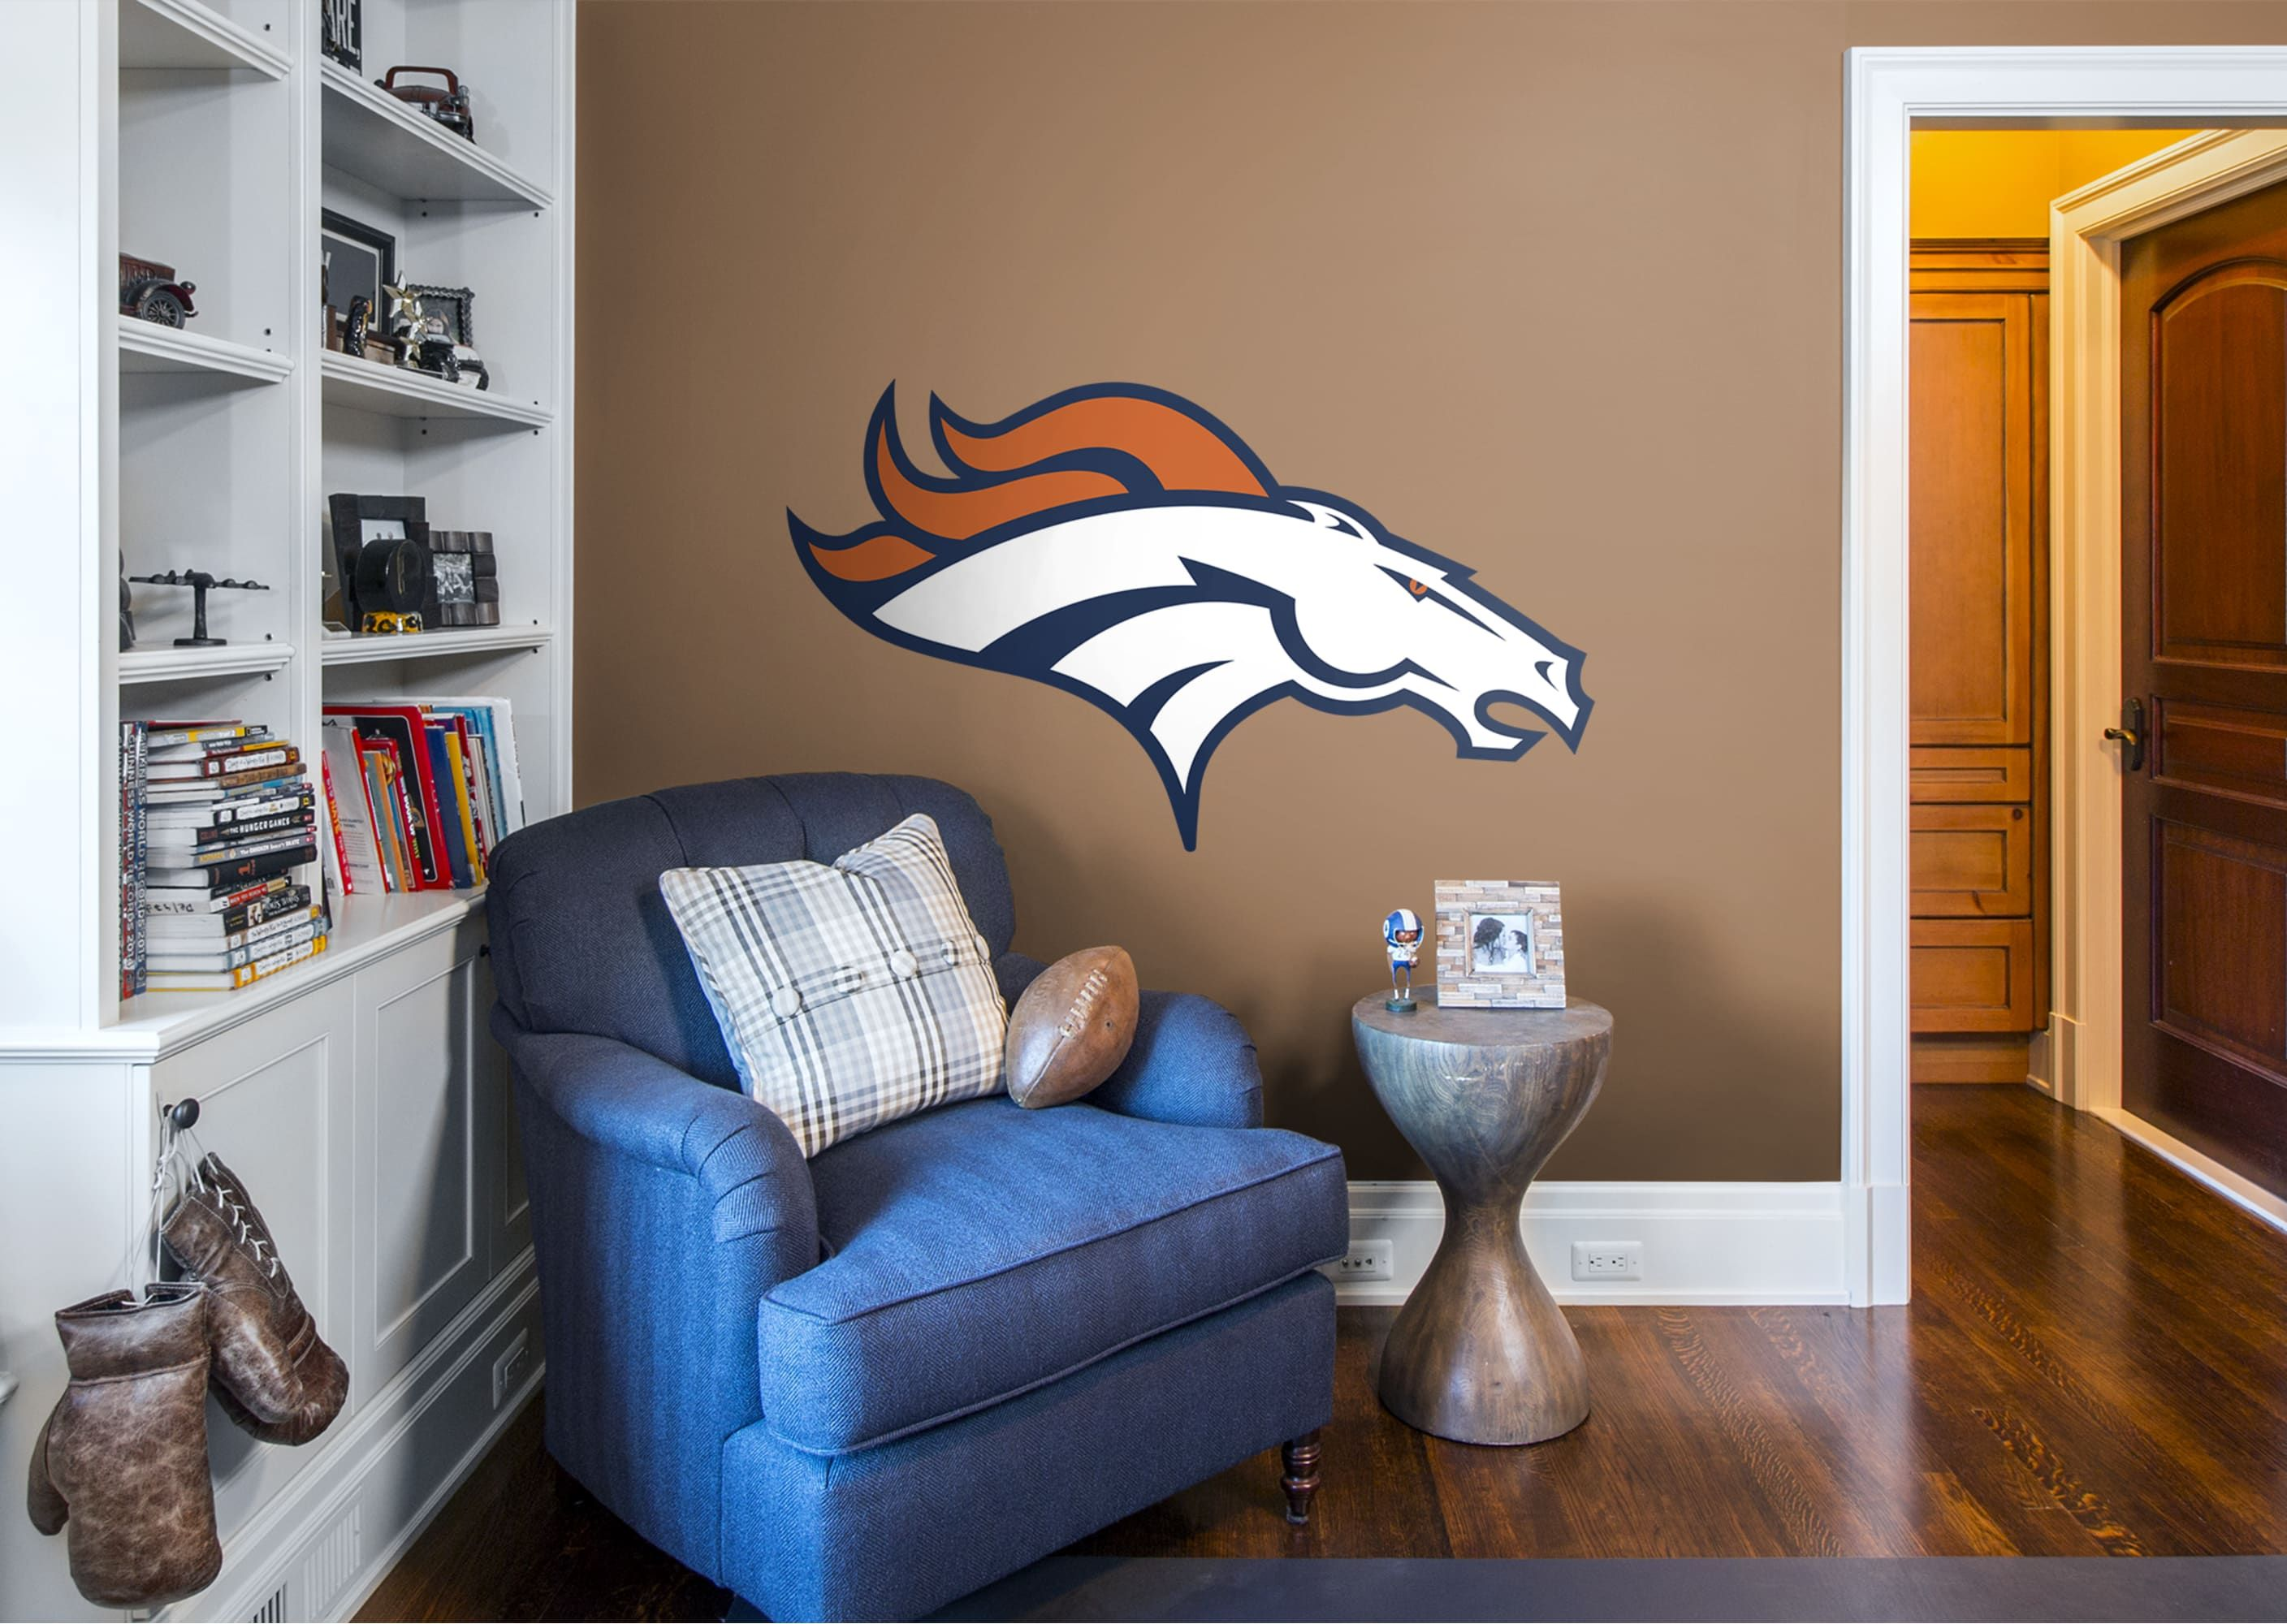 fb5da0fb Put your passion on display with a giant Denver Broncos: Logo - Giant  Officially Licensed NFL Removable Wall Decal Fathead wall decal!